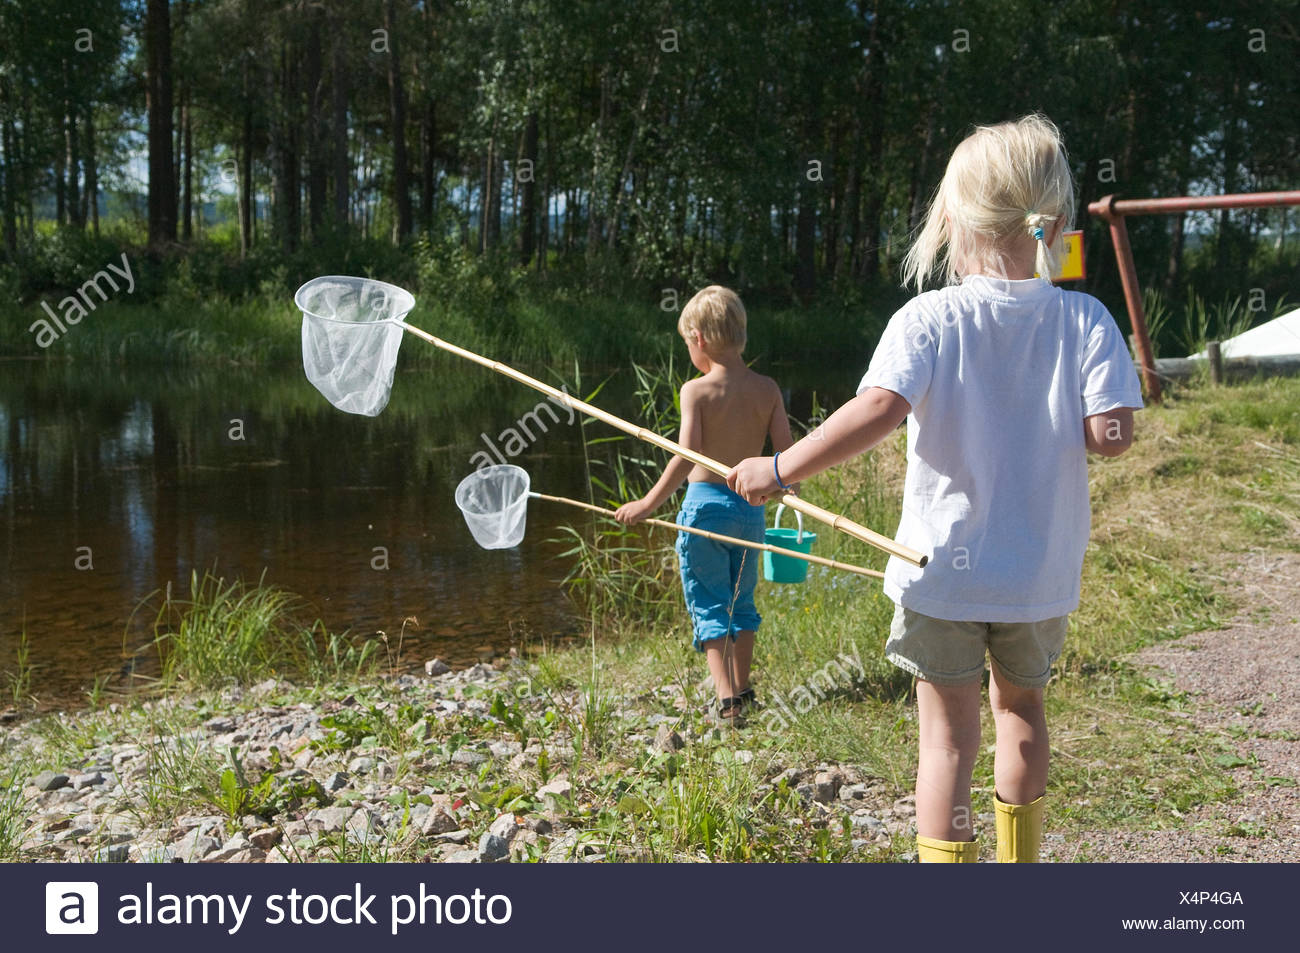 Children with butterfly-nets, Sweden. - Stock Image